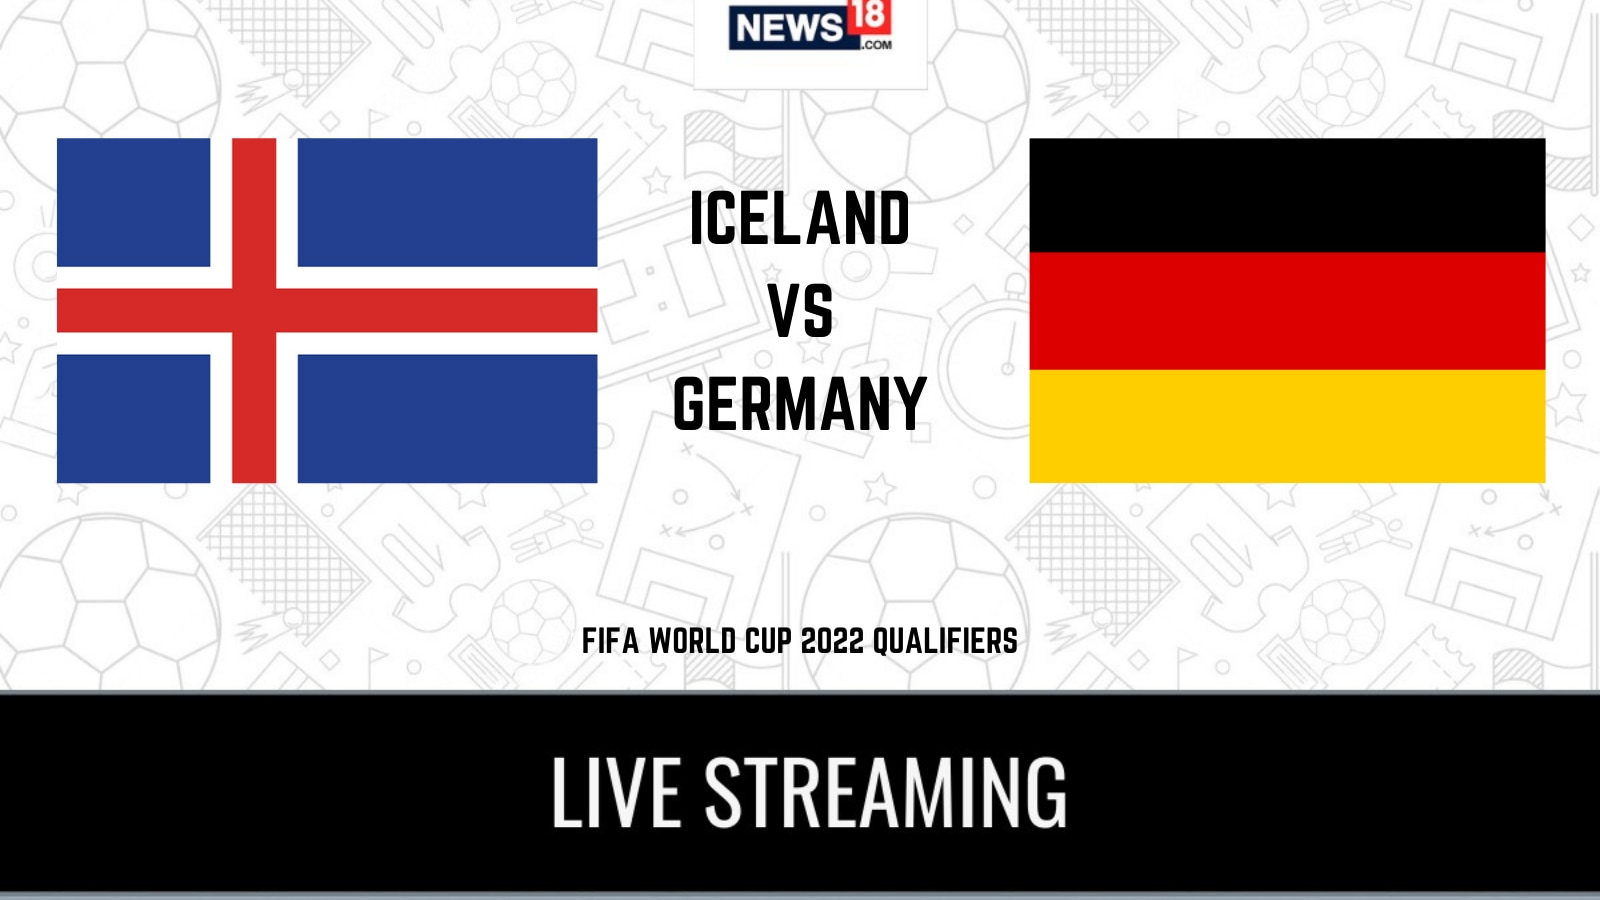 2022 FIFA World Cup qualifiers Iceland vs Germany LIVE Streaming: When and Where to Watch Online, TV Telecast, Team News